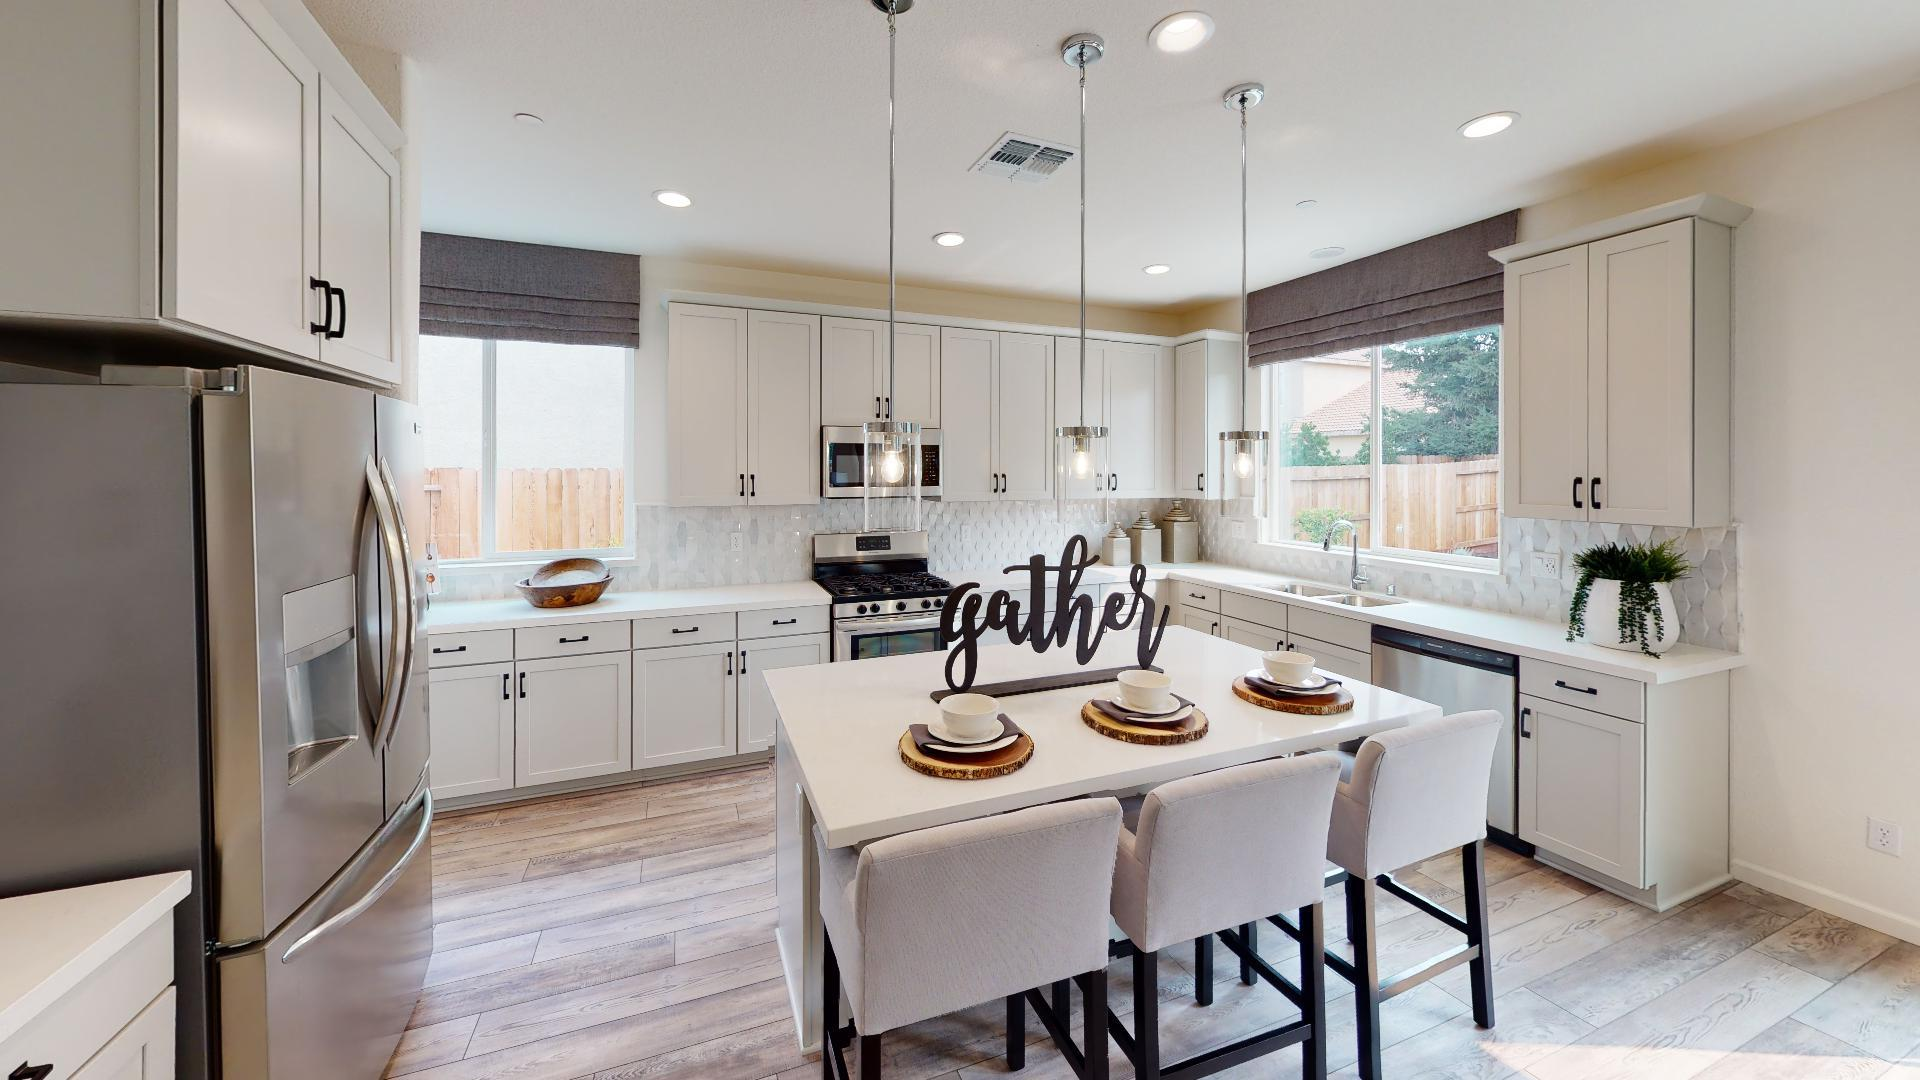 Kitchen featured in the Residence Three By Bright Homes in Merced, CA